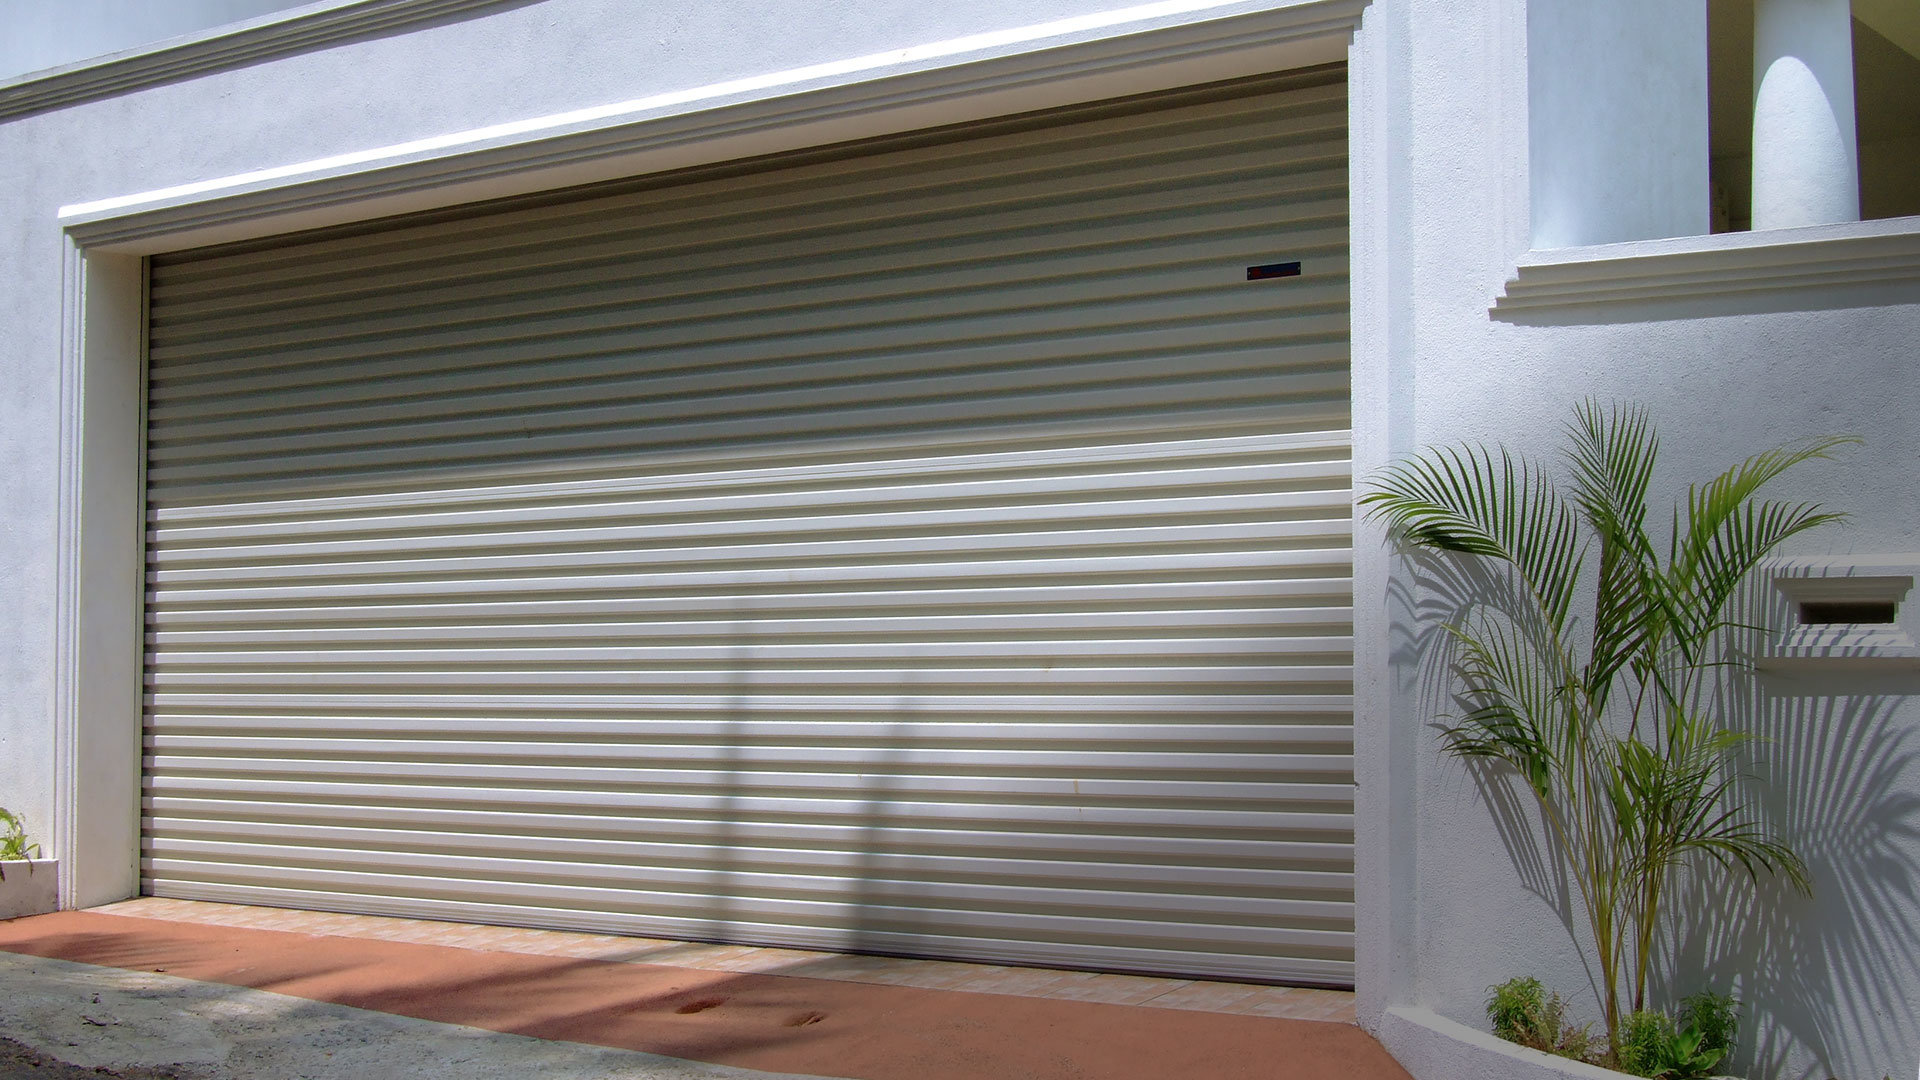 7 Reasons for Installing Roller Shutters